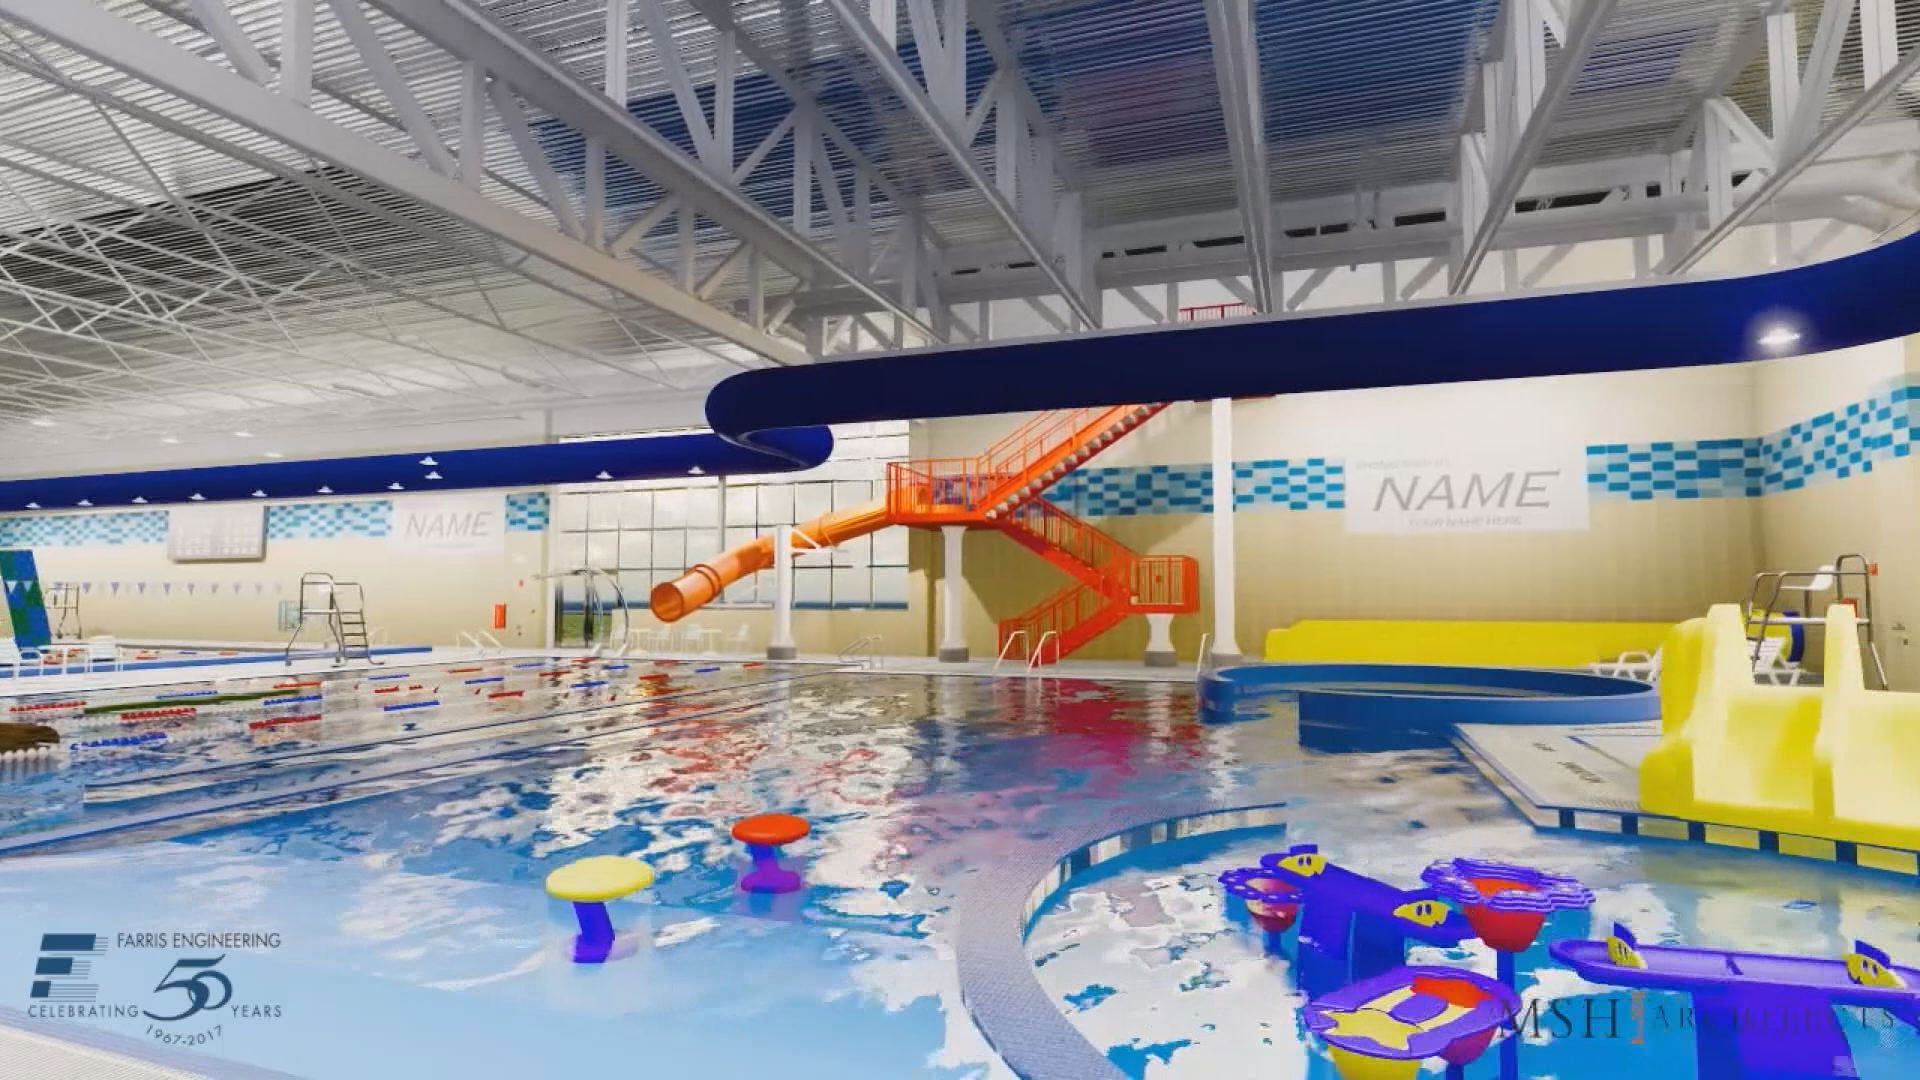 play area proposed Mitchell aquatic center